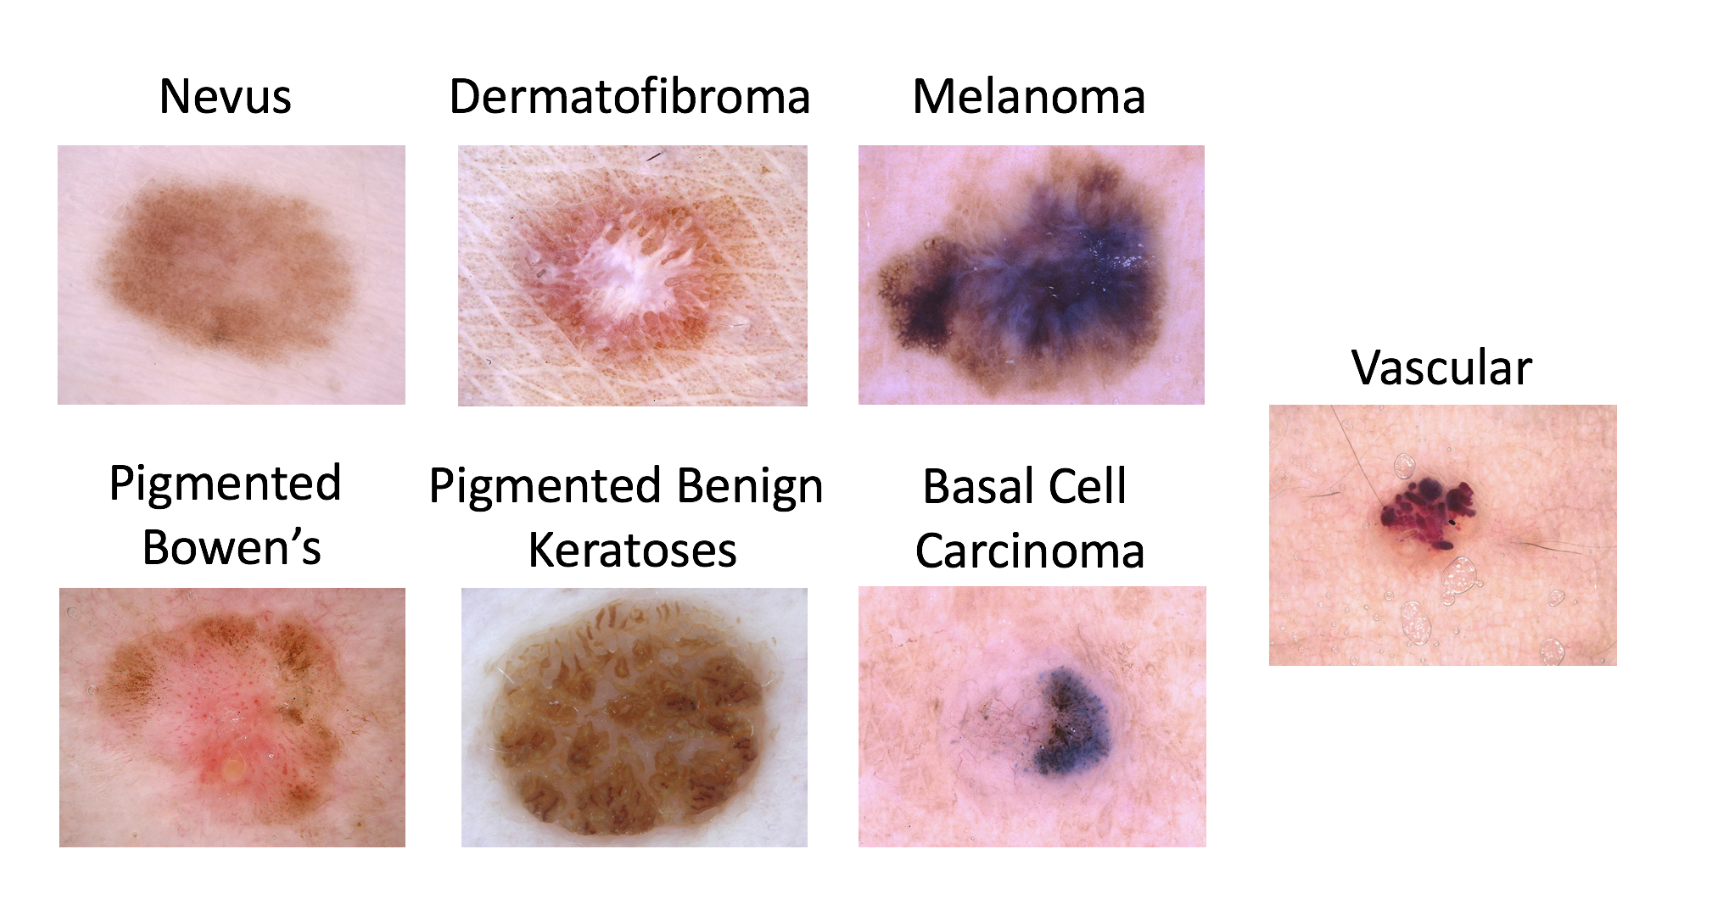 The full list of lesion types types to classify in the ISIC dataset. We'll be focusing on Melanoma vs. non-Melanoma.